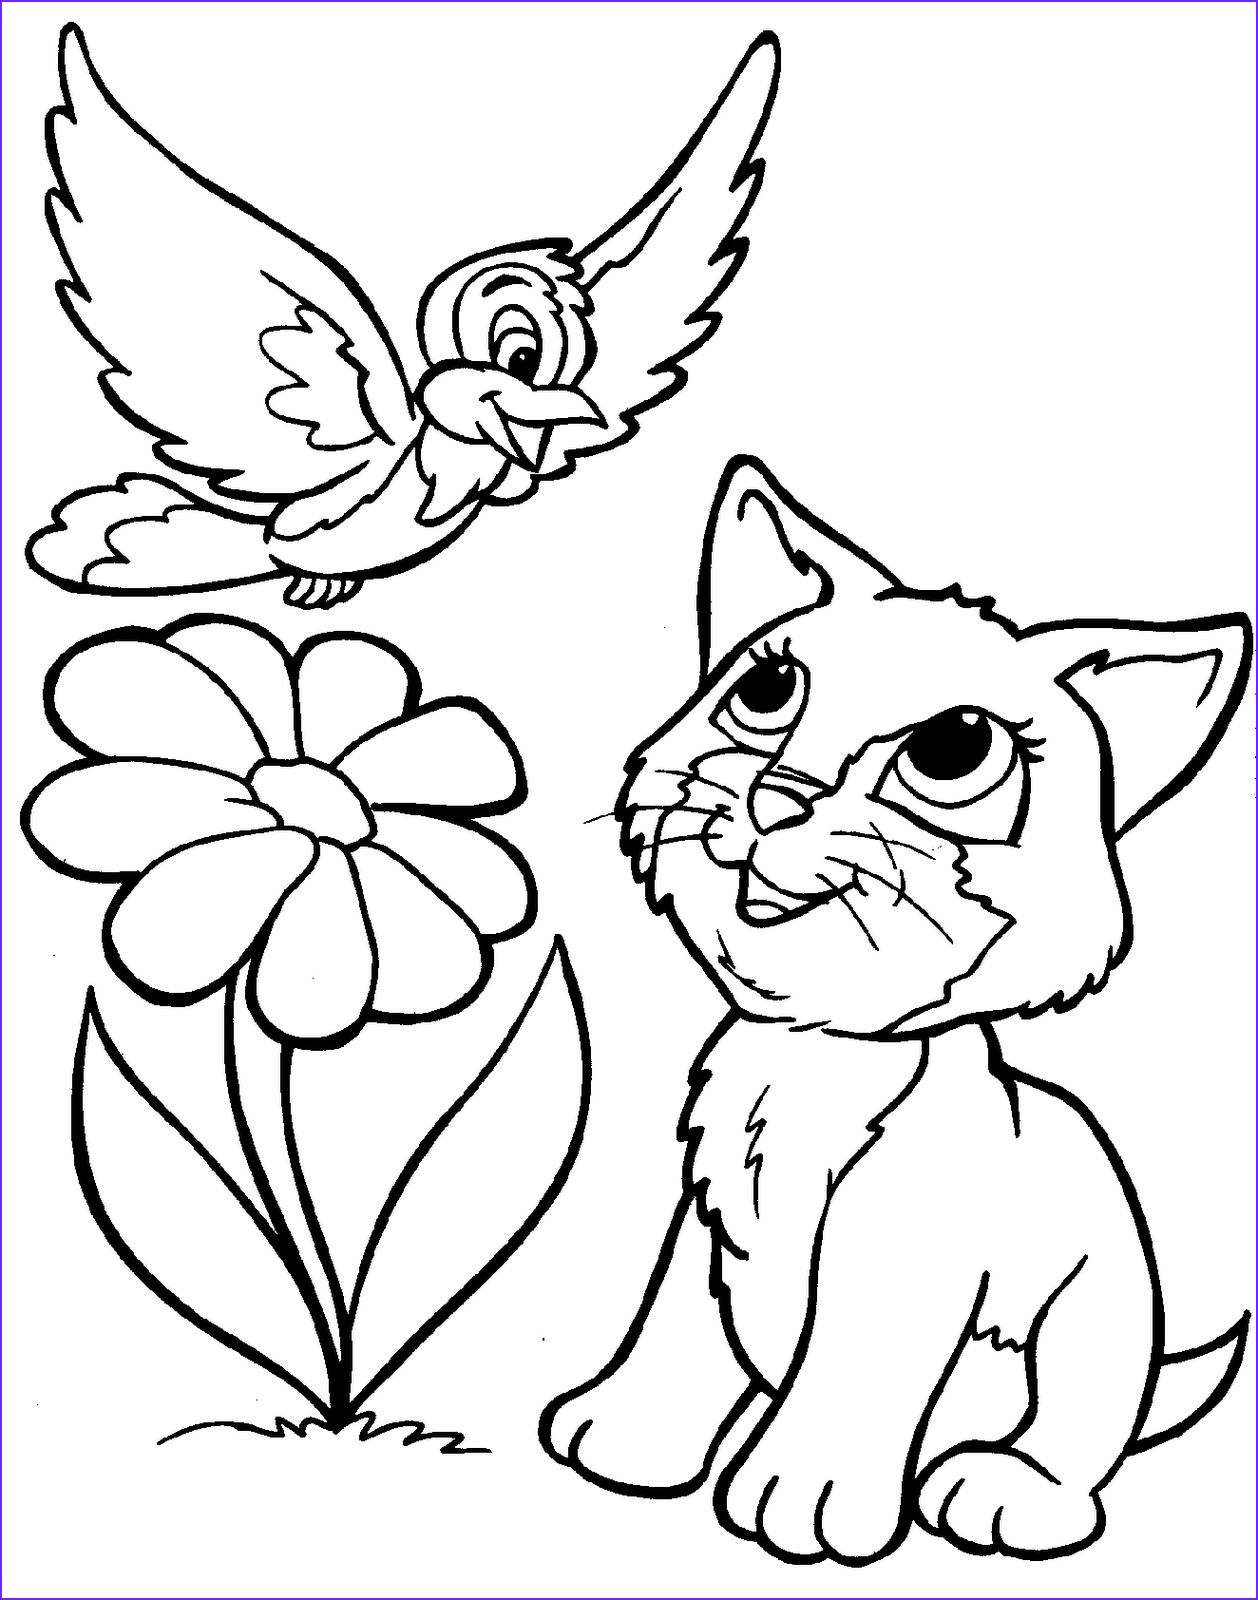 Cute Coloring Pages New Photos 10 Cute Animals Coloring Pages